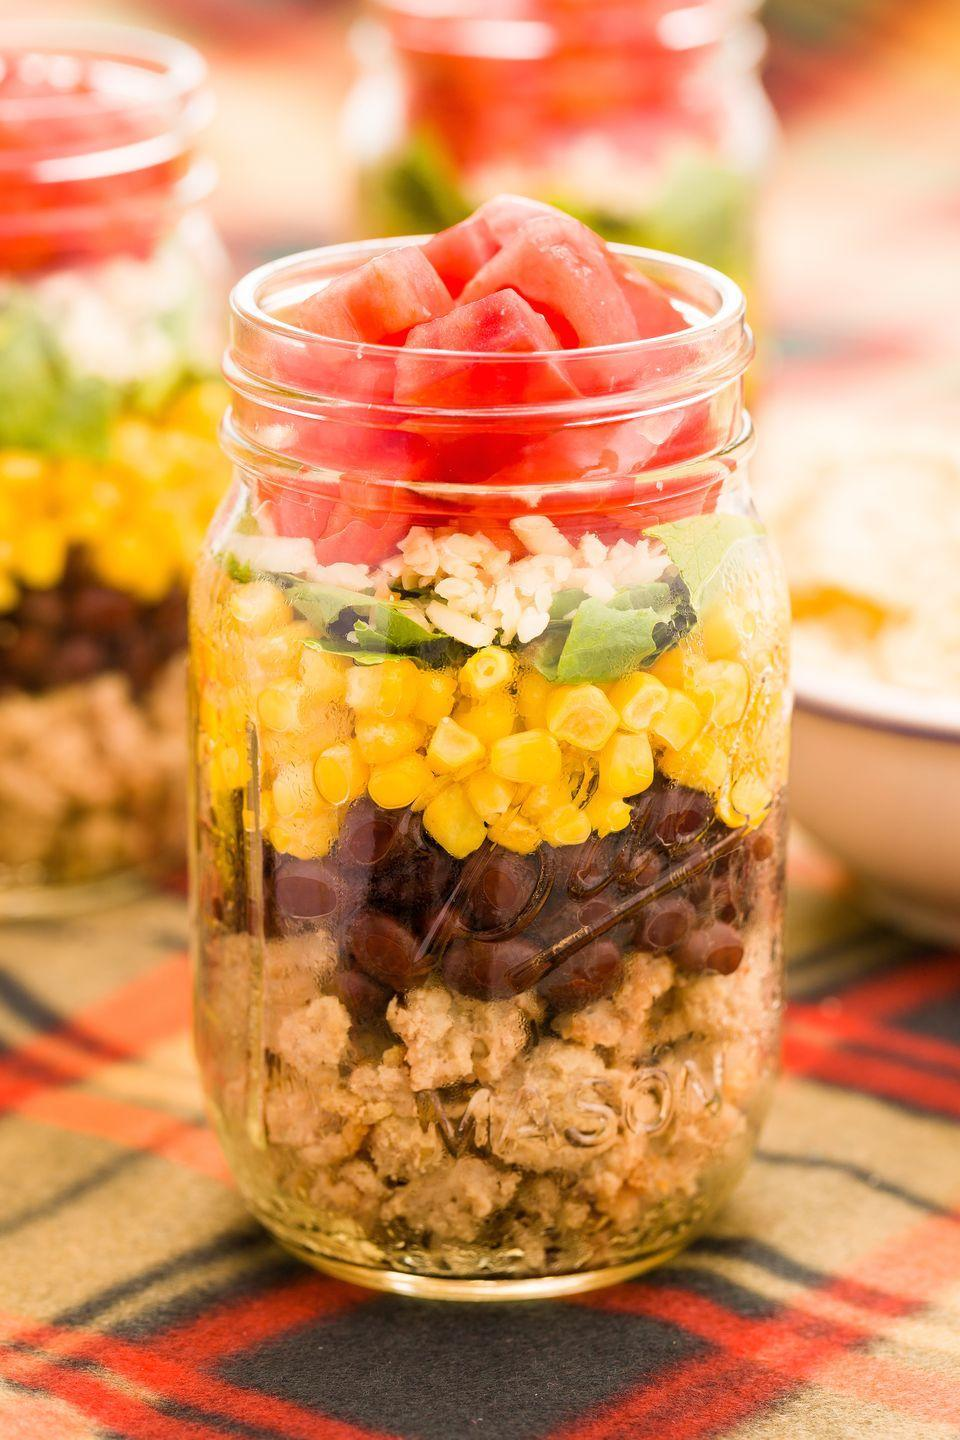 """<p>Which layer is your favorite?</p><p>Get the recipe from <a href=""""https://www.delish.com/cooking/recipe-ideas/recipes/a43747/taco-salad-in-a-jar-recipe/"""" rel=""""nofollow noopener"""" target=""""_blank"""" data-ylk=""""slk:Delish"""" class=""""link rapid-noclick-resp"""">Delish</a>.</p>"""